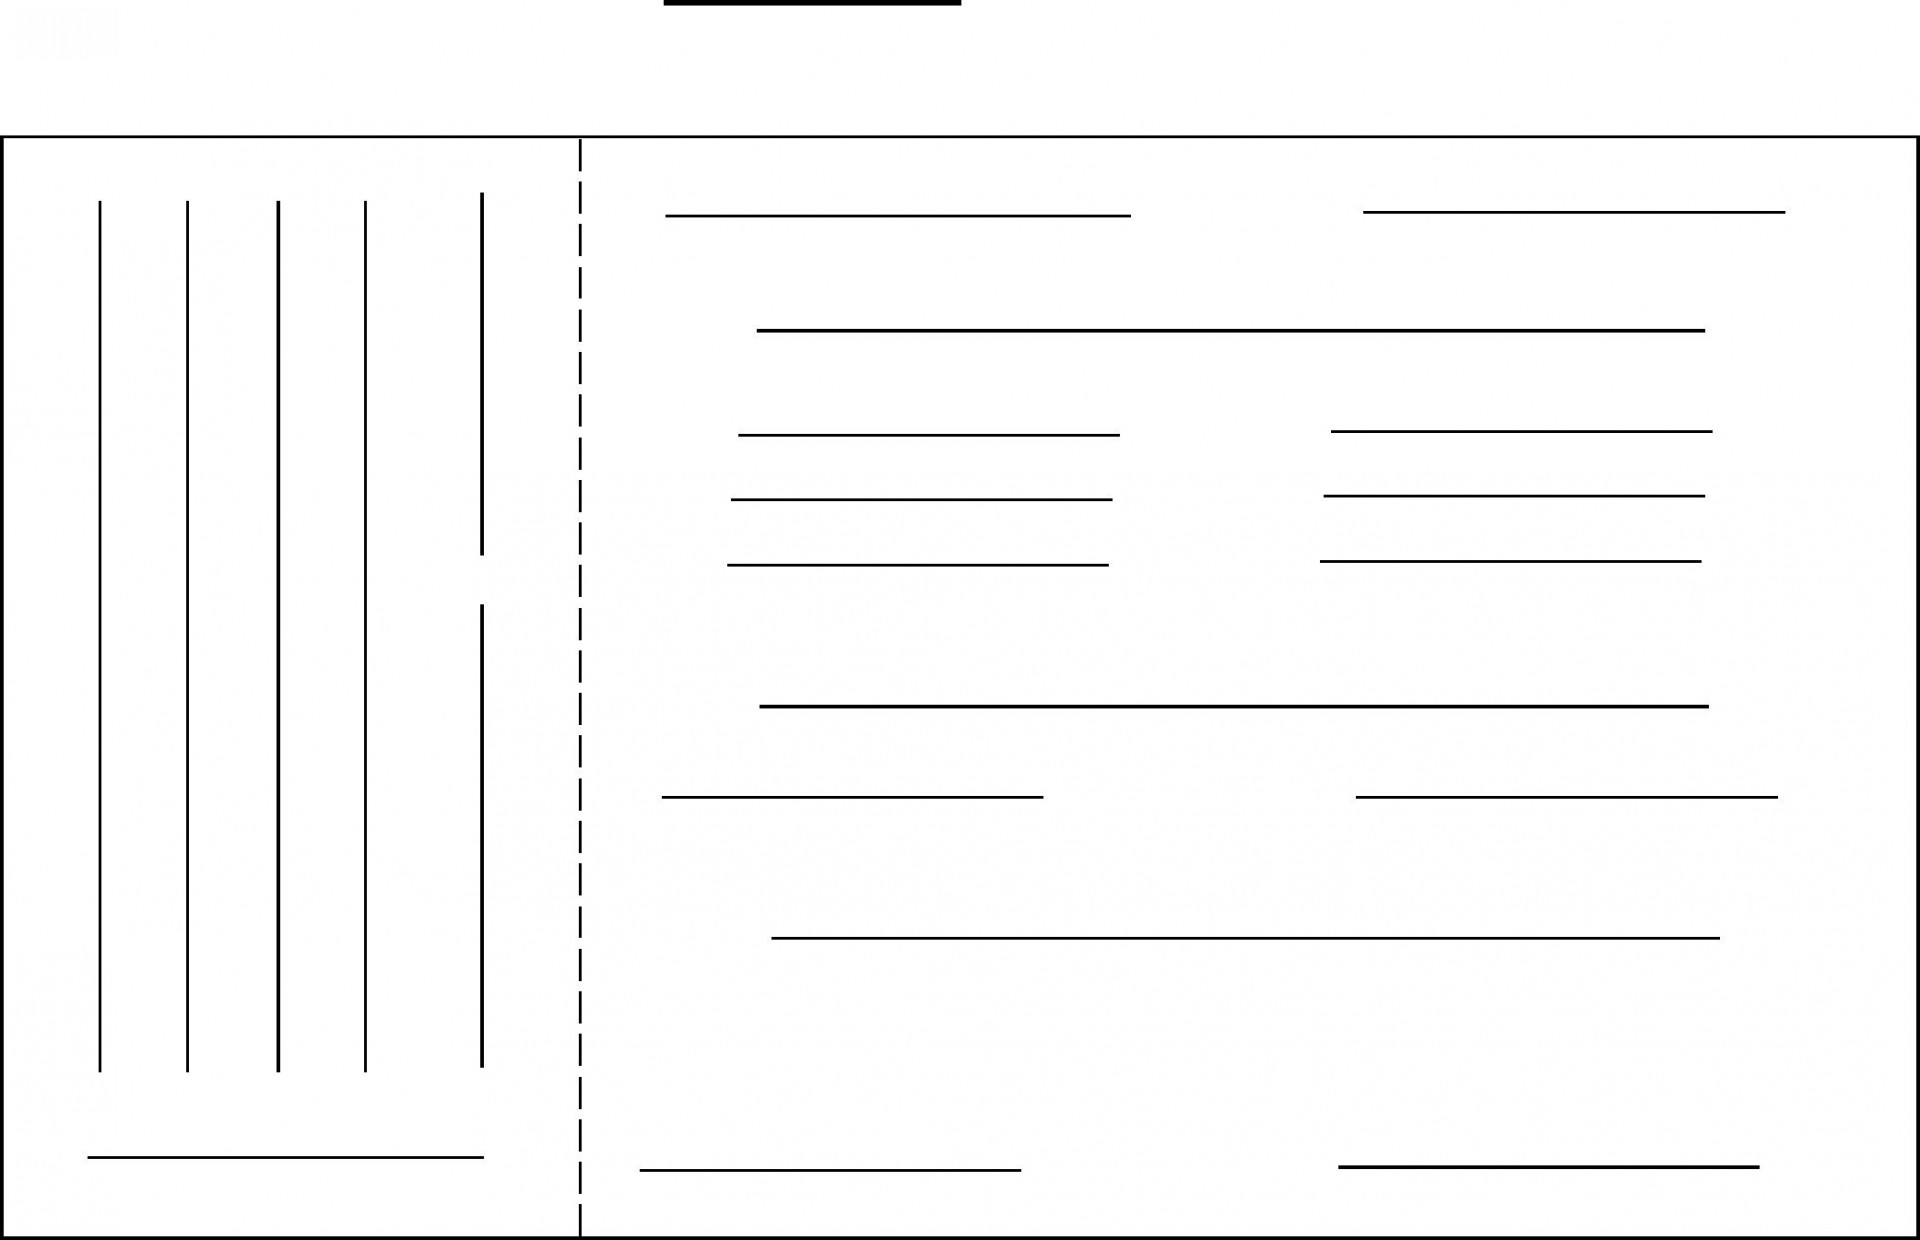 005 Outstanding Free Raffle Ticket Template Example  Word 10 Per Page For Mac Download1920